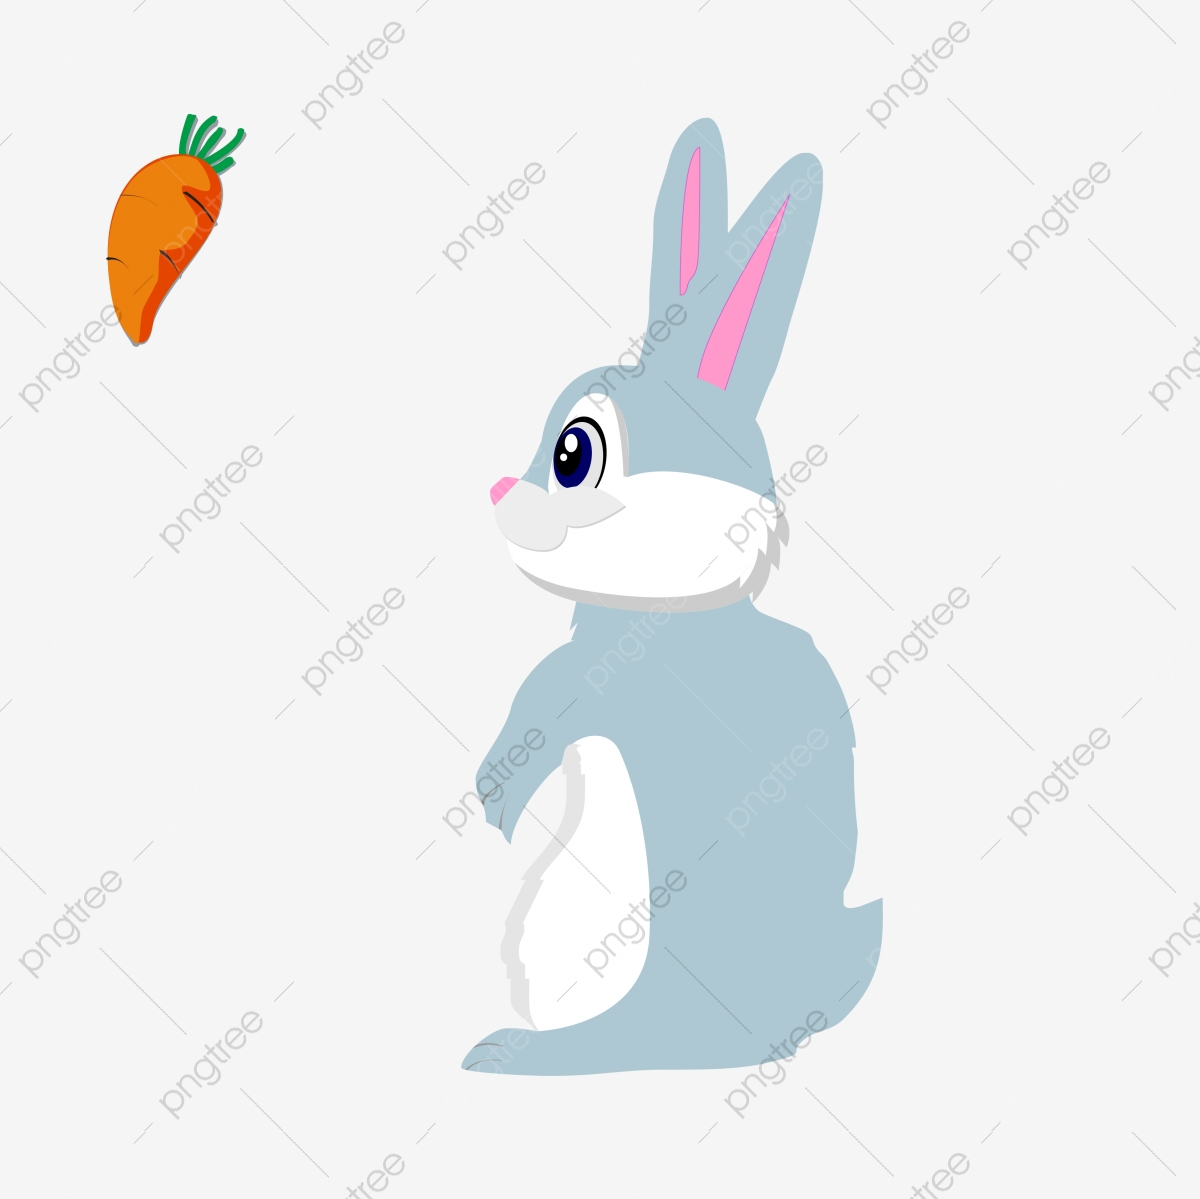 Free clipart drawings of rabbits in the forest. Little grey rabbit carrot